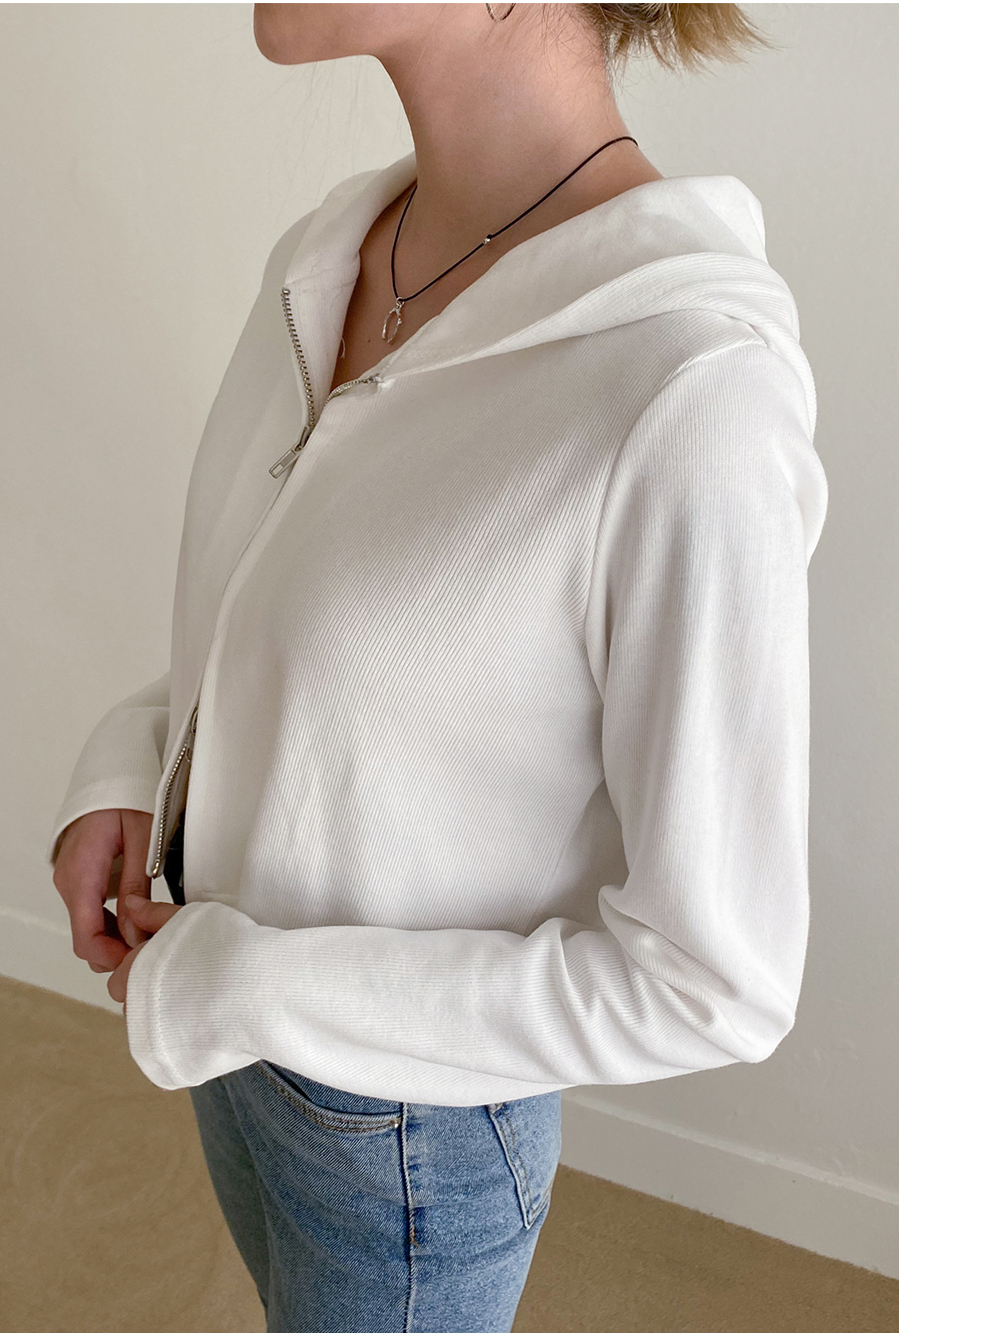 Dalo two-way hooded zip up